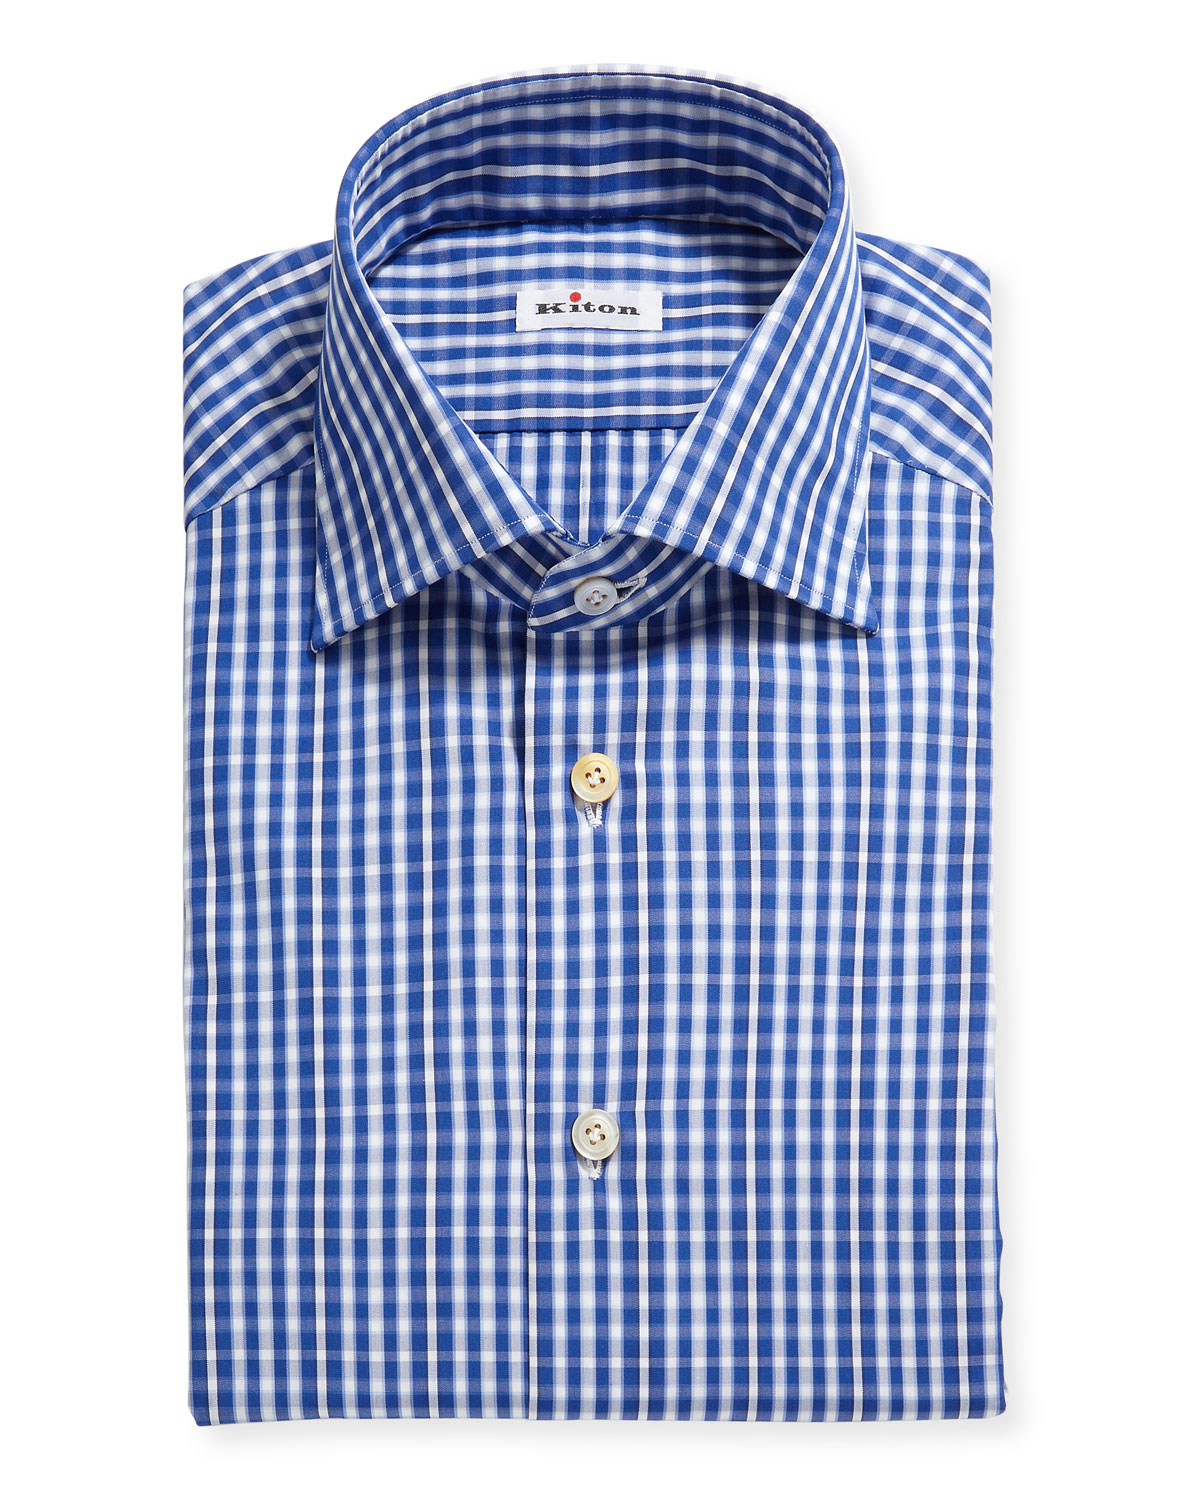 Kiton Men's Check Cotton Dress Shirt